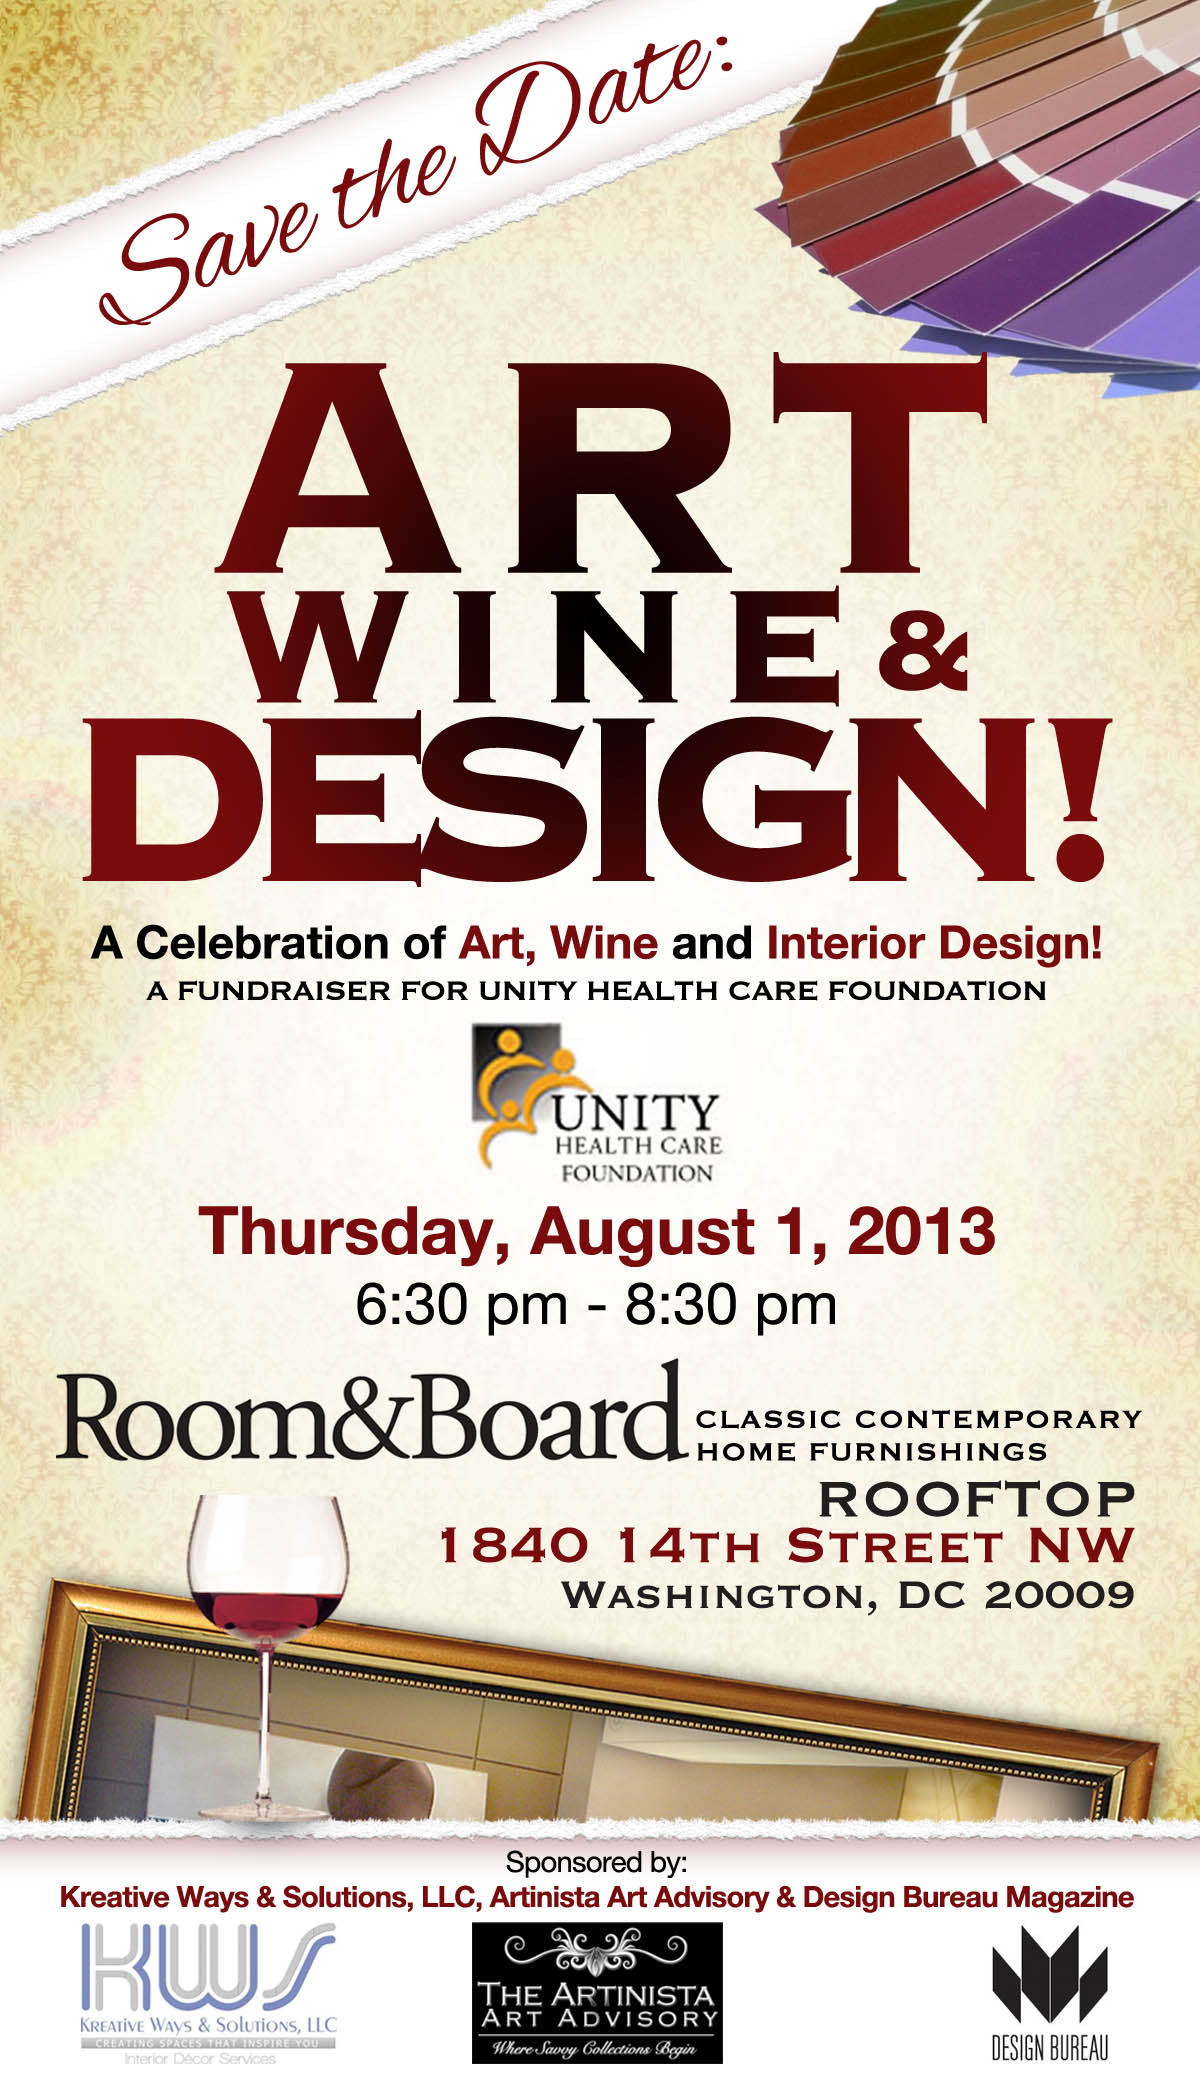 Design Bureau Llc Save The Date Art Wine Design August 1st Kreative